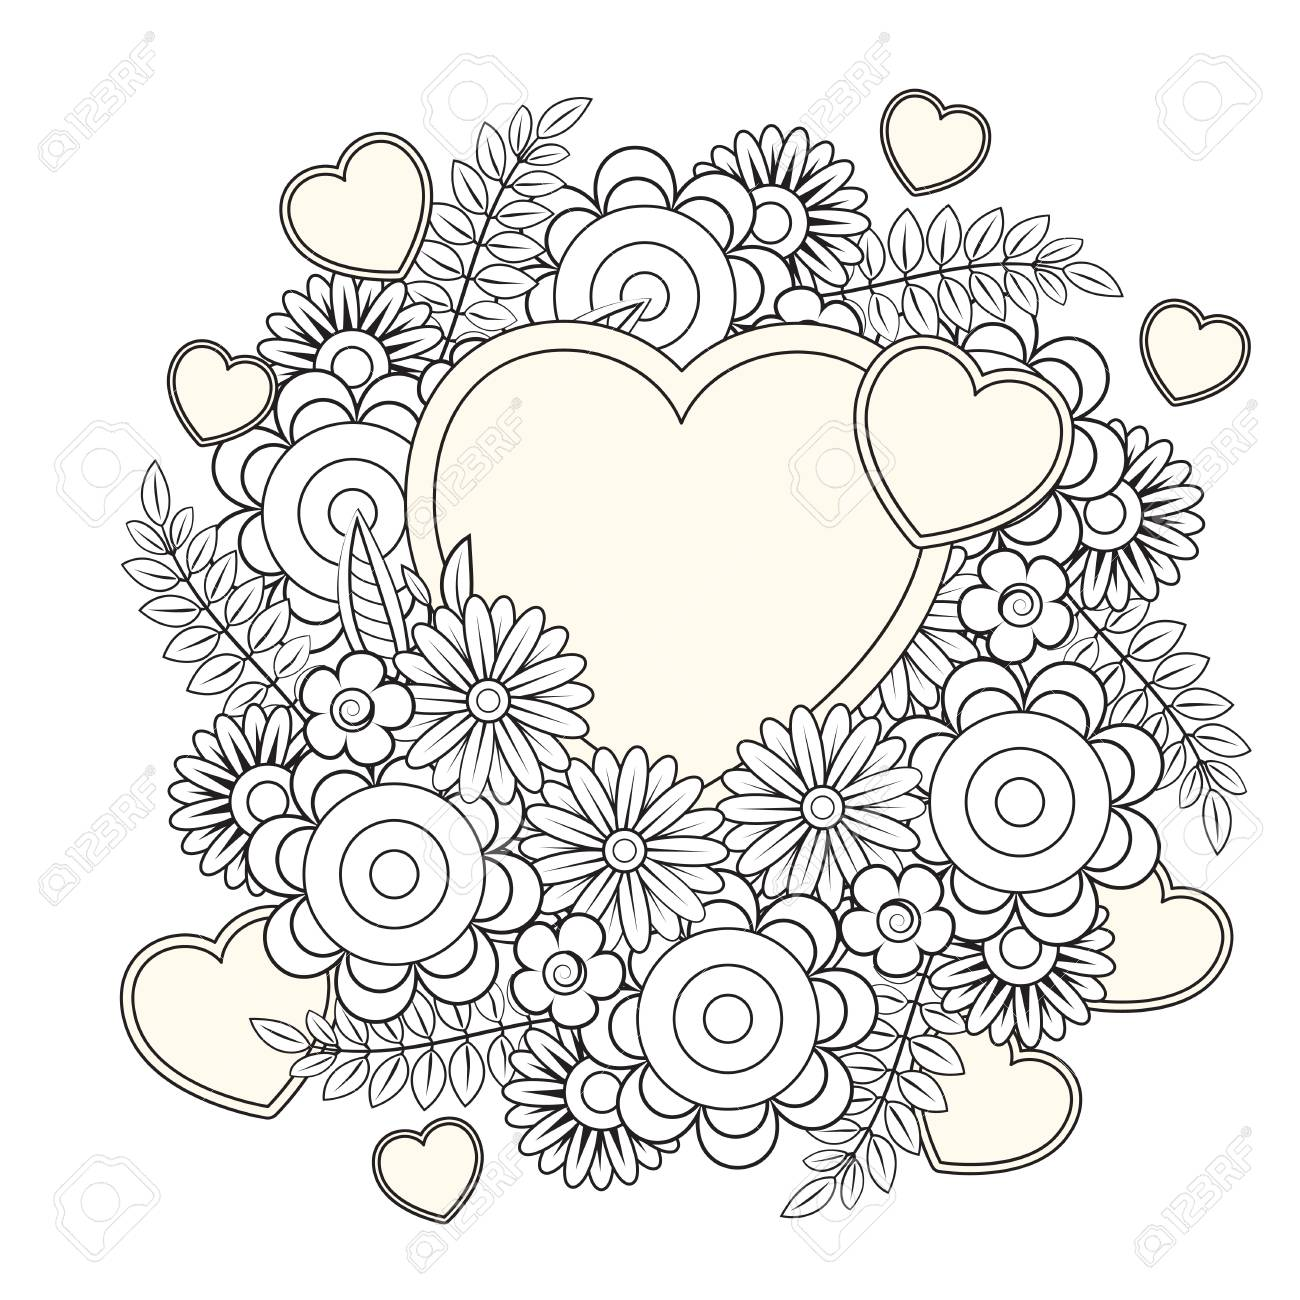 Floral Heart Valentines Day Adult Coloring Page Vector Illustration Royalty Free Cliparts Vectors And Stock Illustration Image 126028658